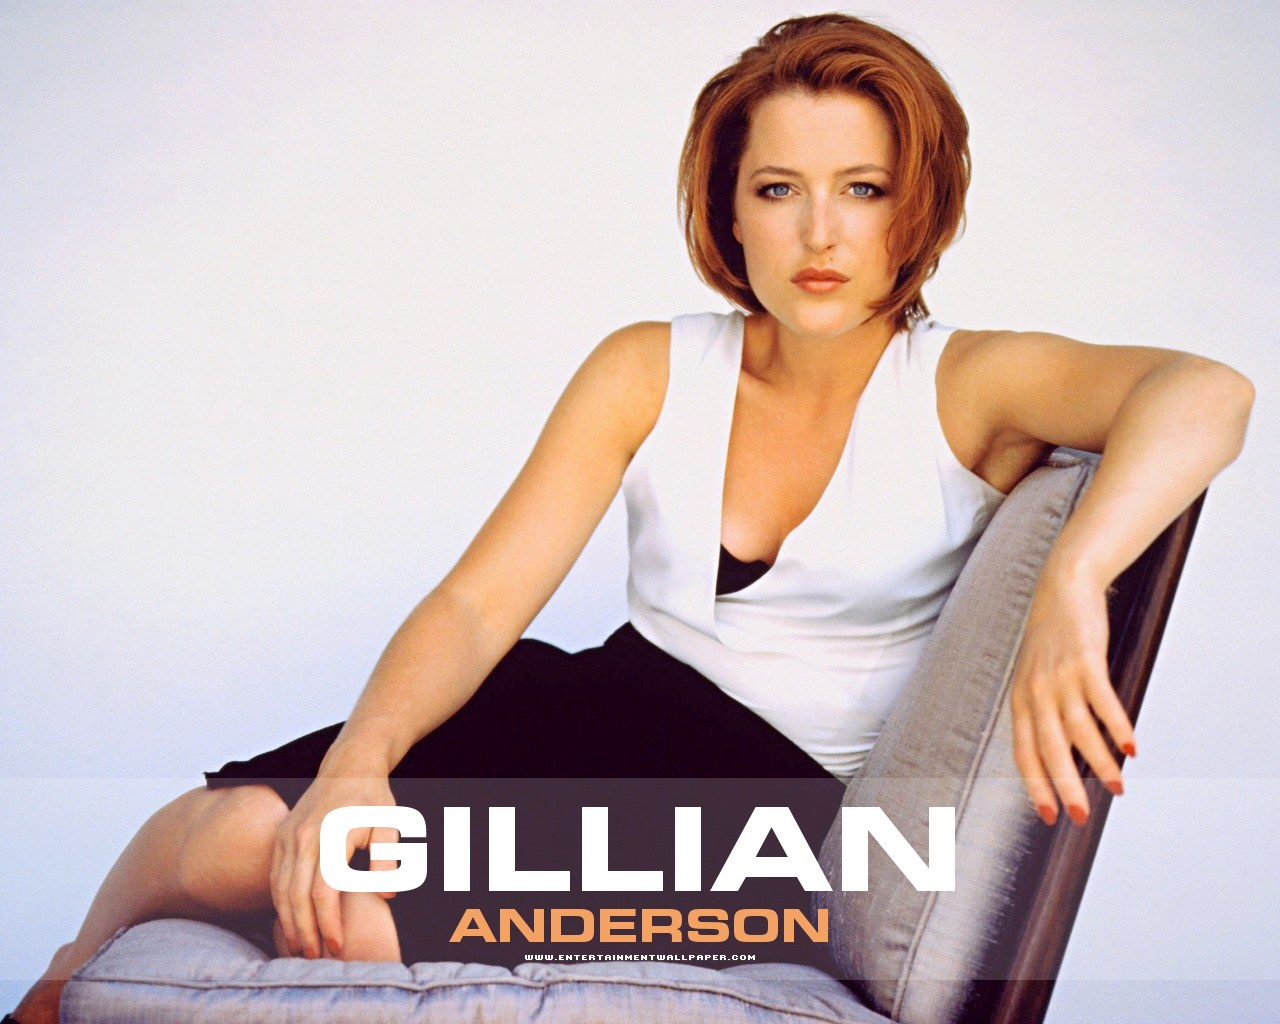 1280x1024 - Gillian Anderson Wallpapers 9